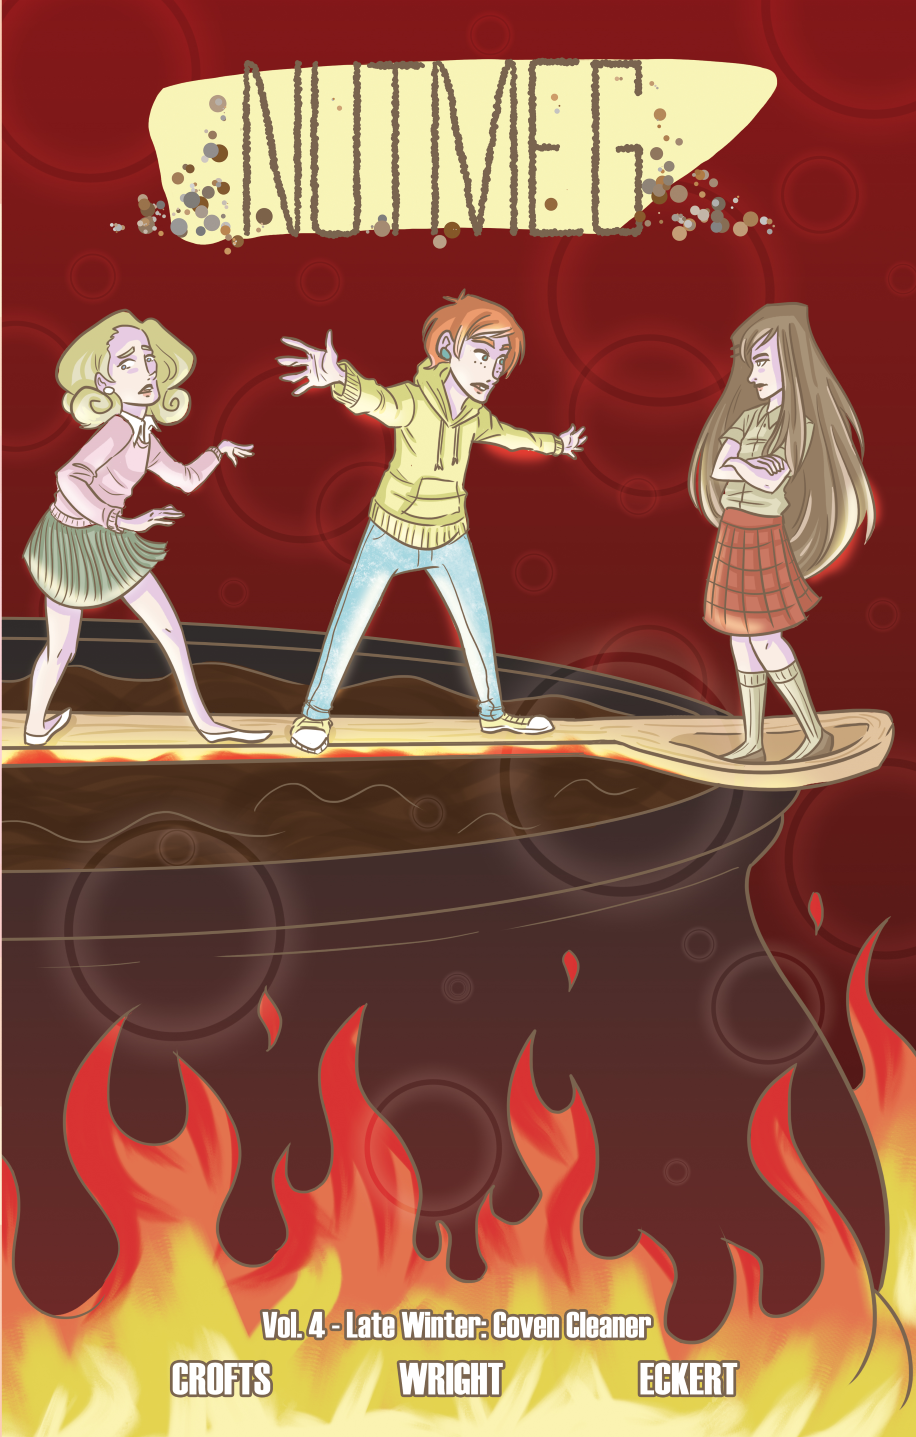 "NUTMEG TPB Vol. 4    February 2018    ""Late Winter: Coven Cleaner""    Collecting issues 10-12 of Nutmeg. After winter break, Poppy and Cassia's bond is broken, perhaps irrevocably. But from the ashes, an alliance forms between a pair of one-time rivals. Can they restore the Patty Cakes brownie empire, or will they tear each other to pieces in the process? In the midst of winter, Vista Vale is heating up.    Art: Jackie Crofts    Colors/Lettering: Josh Eckert    Script: James F. Wright"